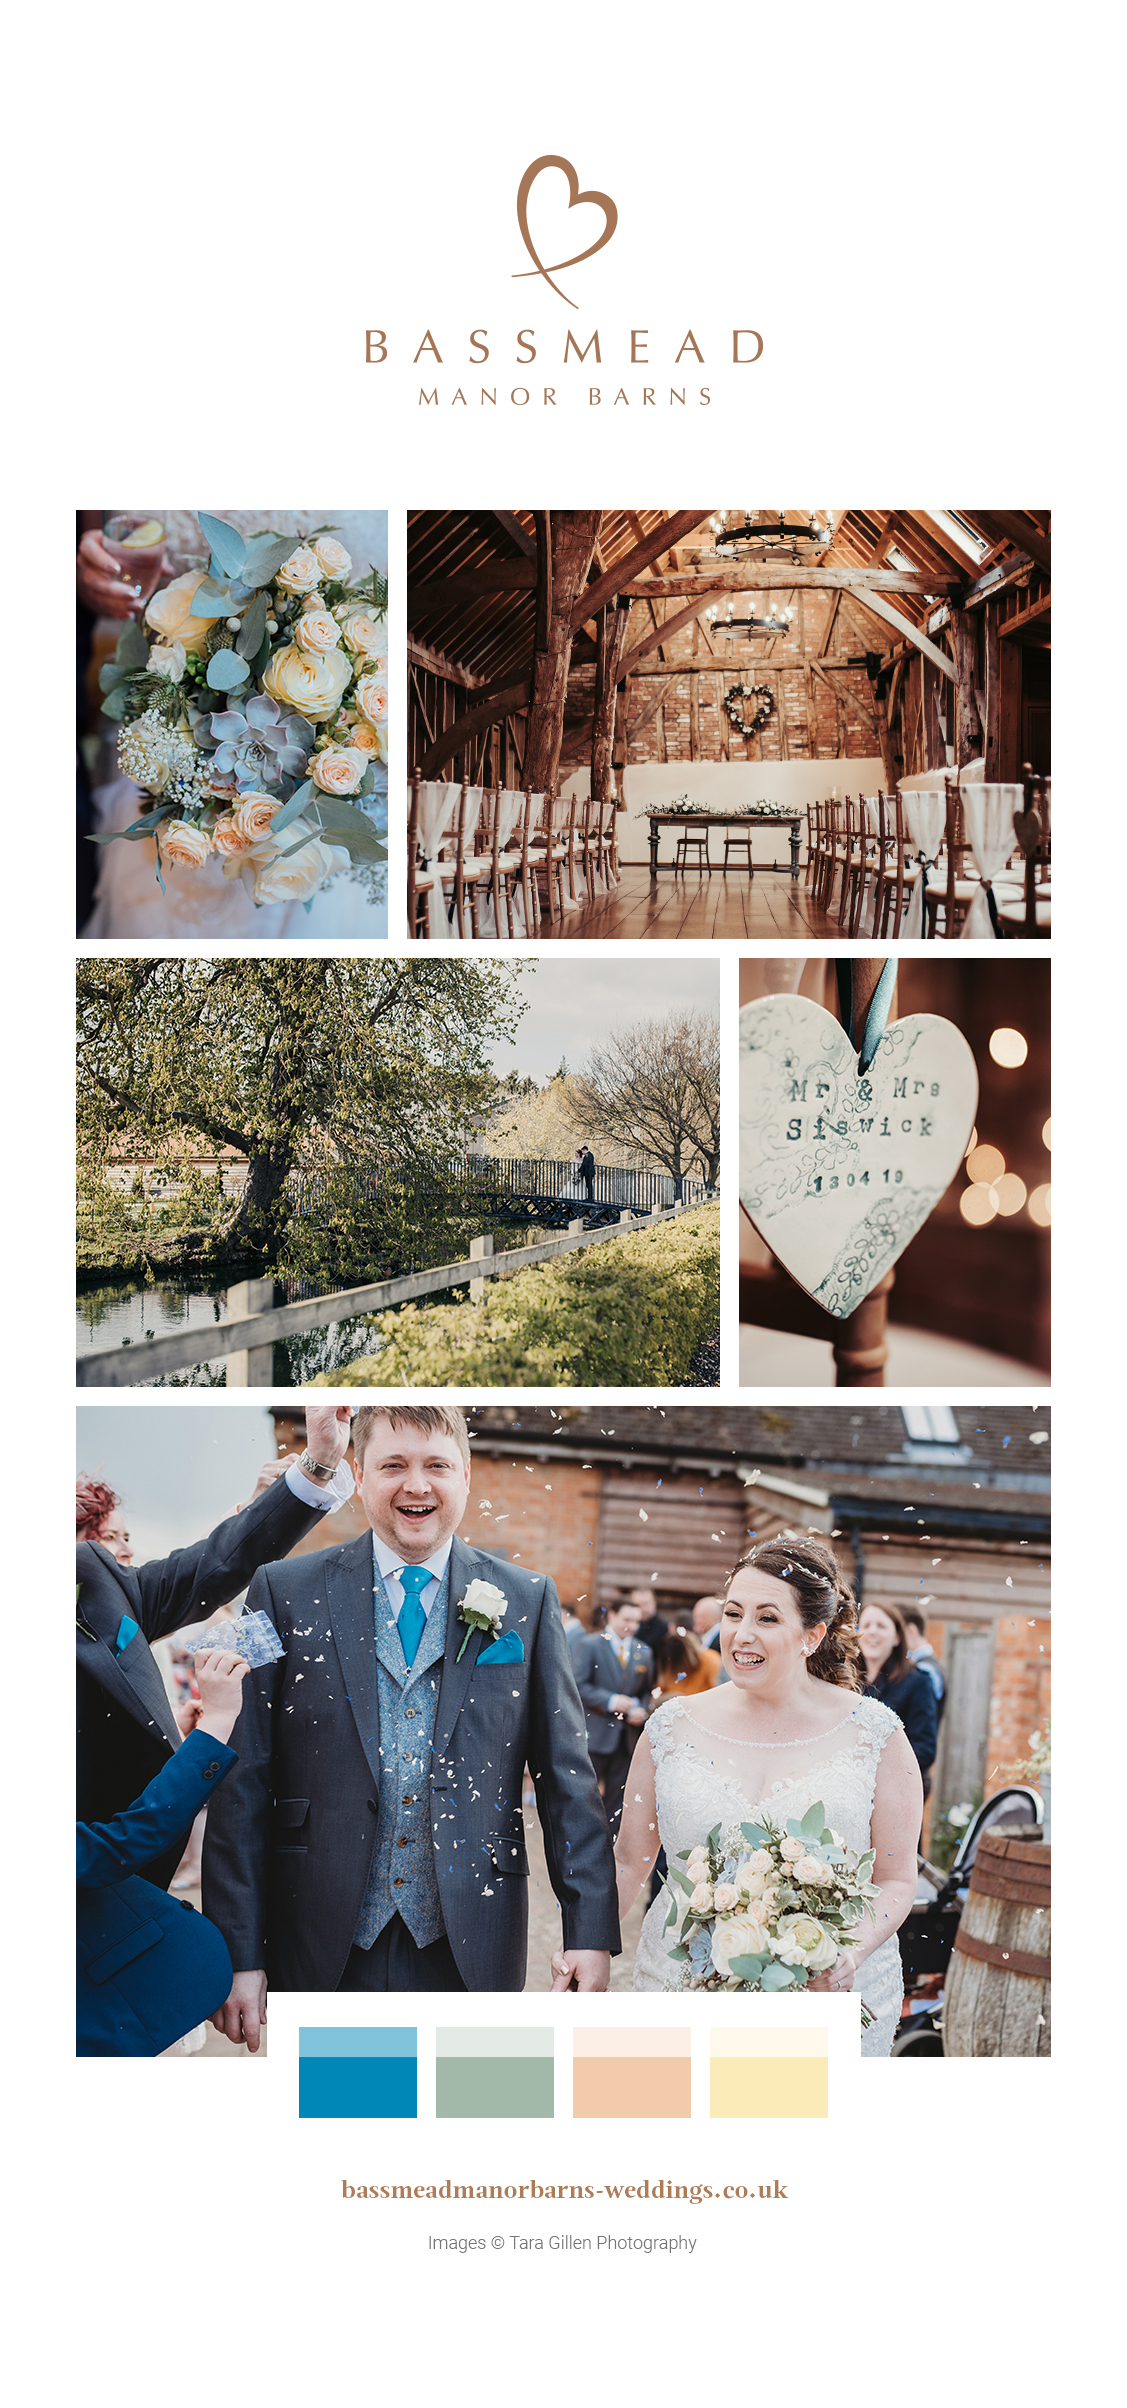 Bassmead Manor Barns - Rachel and Adam